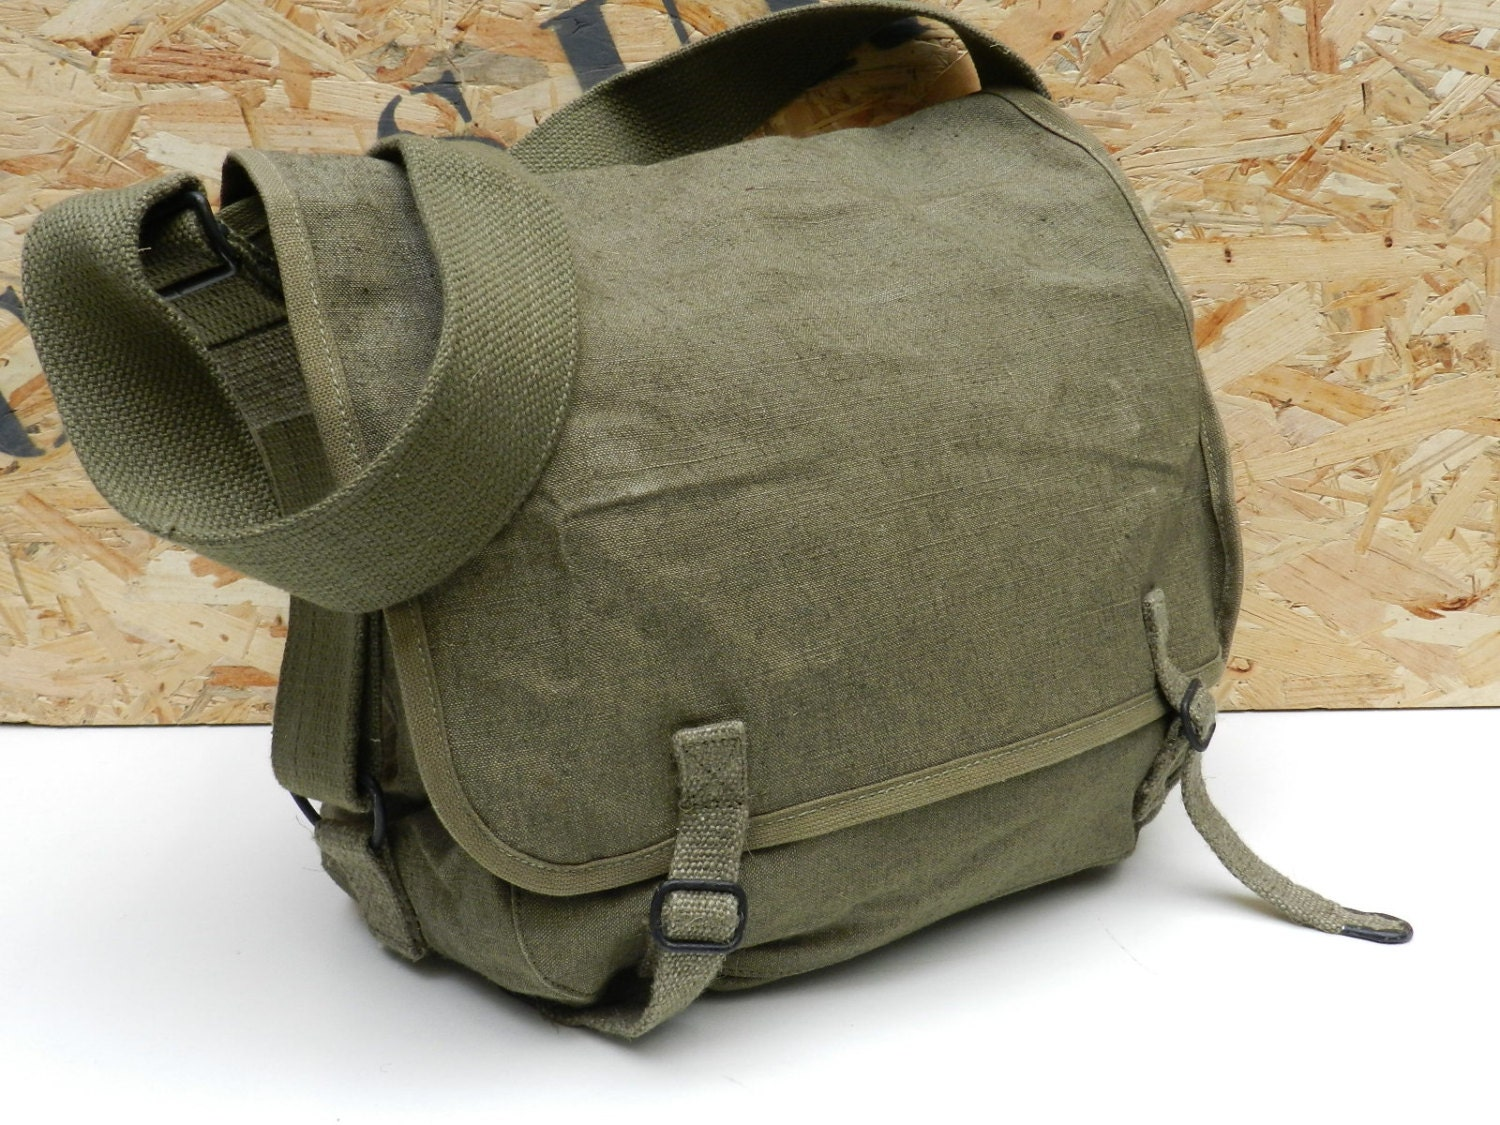 Vintage 1950s French army satchel new messenger bag ruck sack  71888ecf4e6